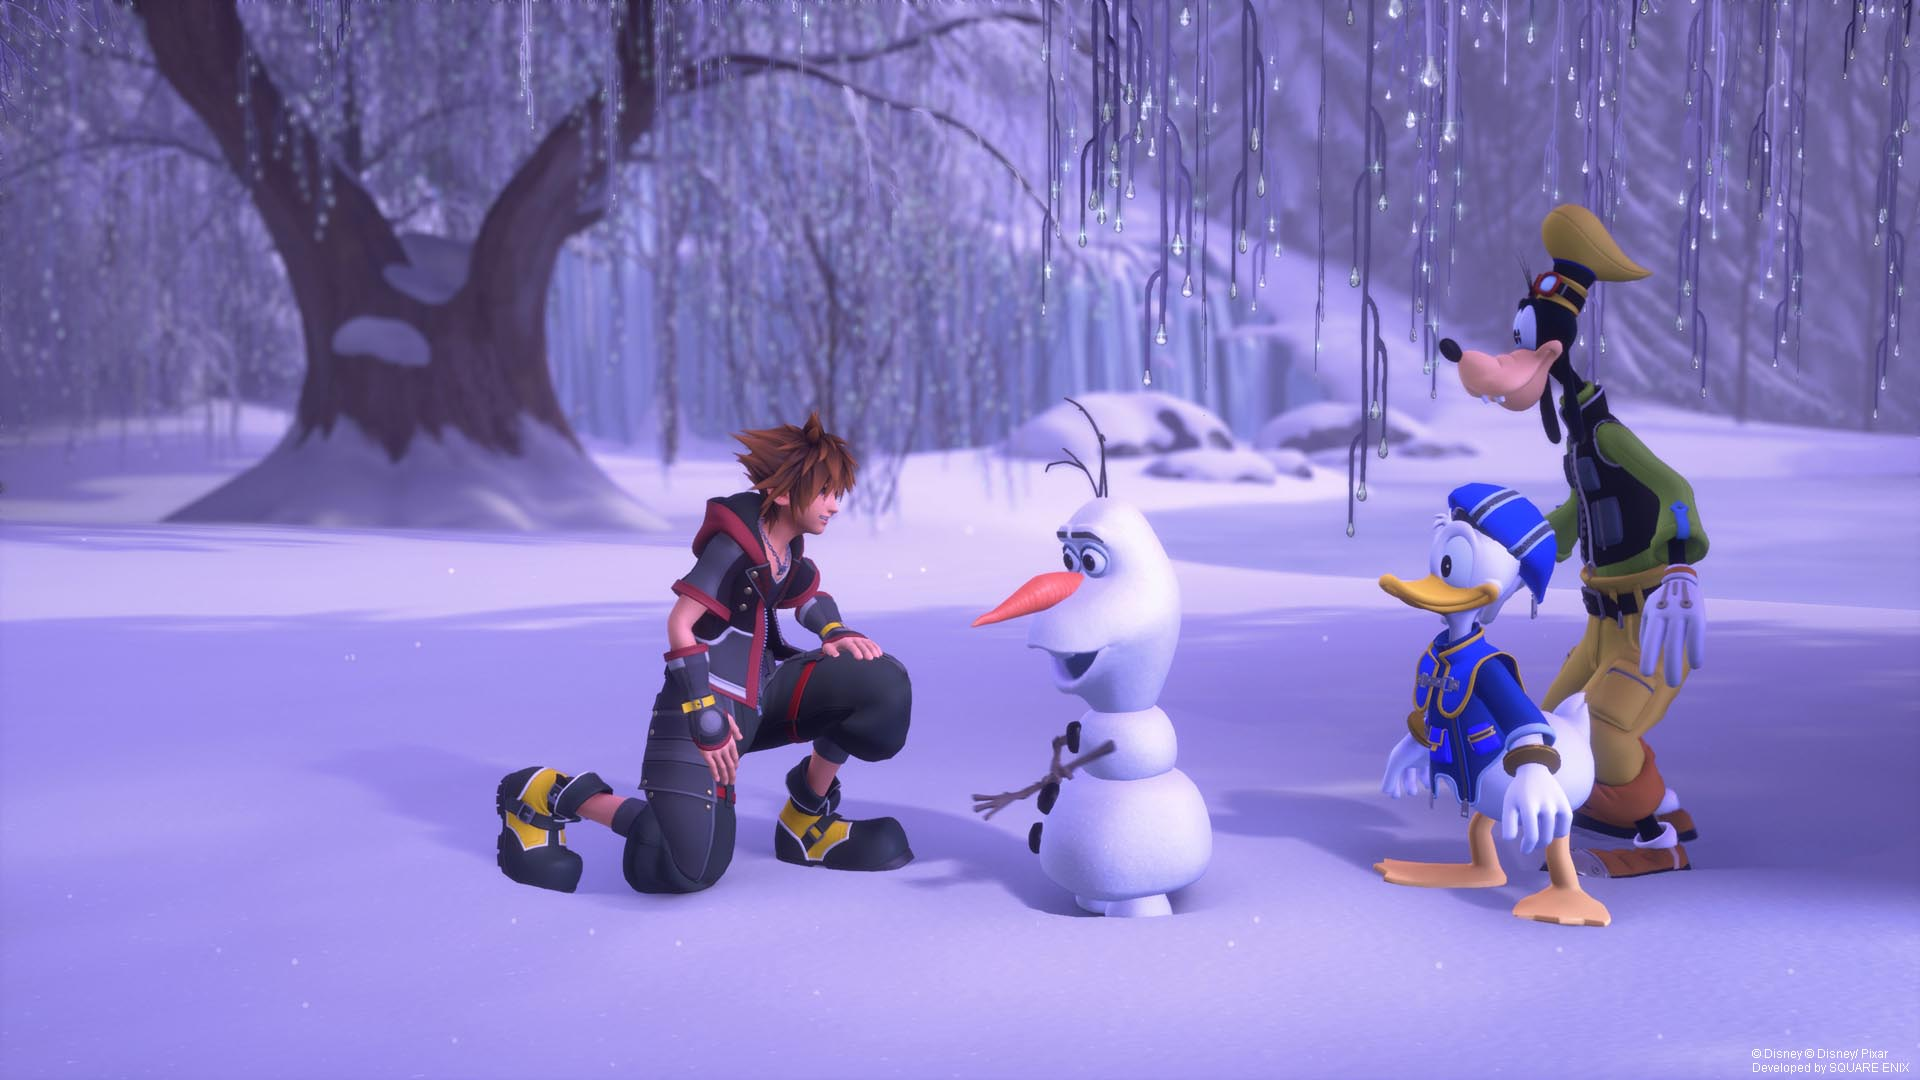 kingdom-hearts-iii-and-re-mind-pc-screenshot-1